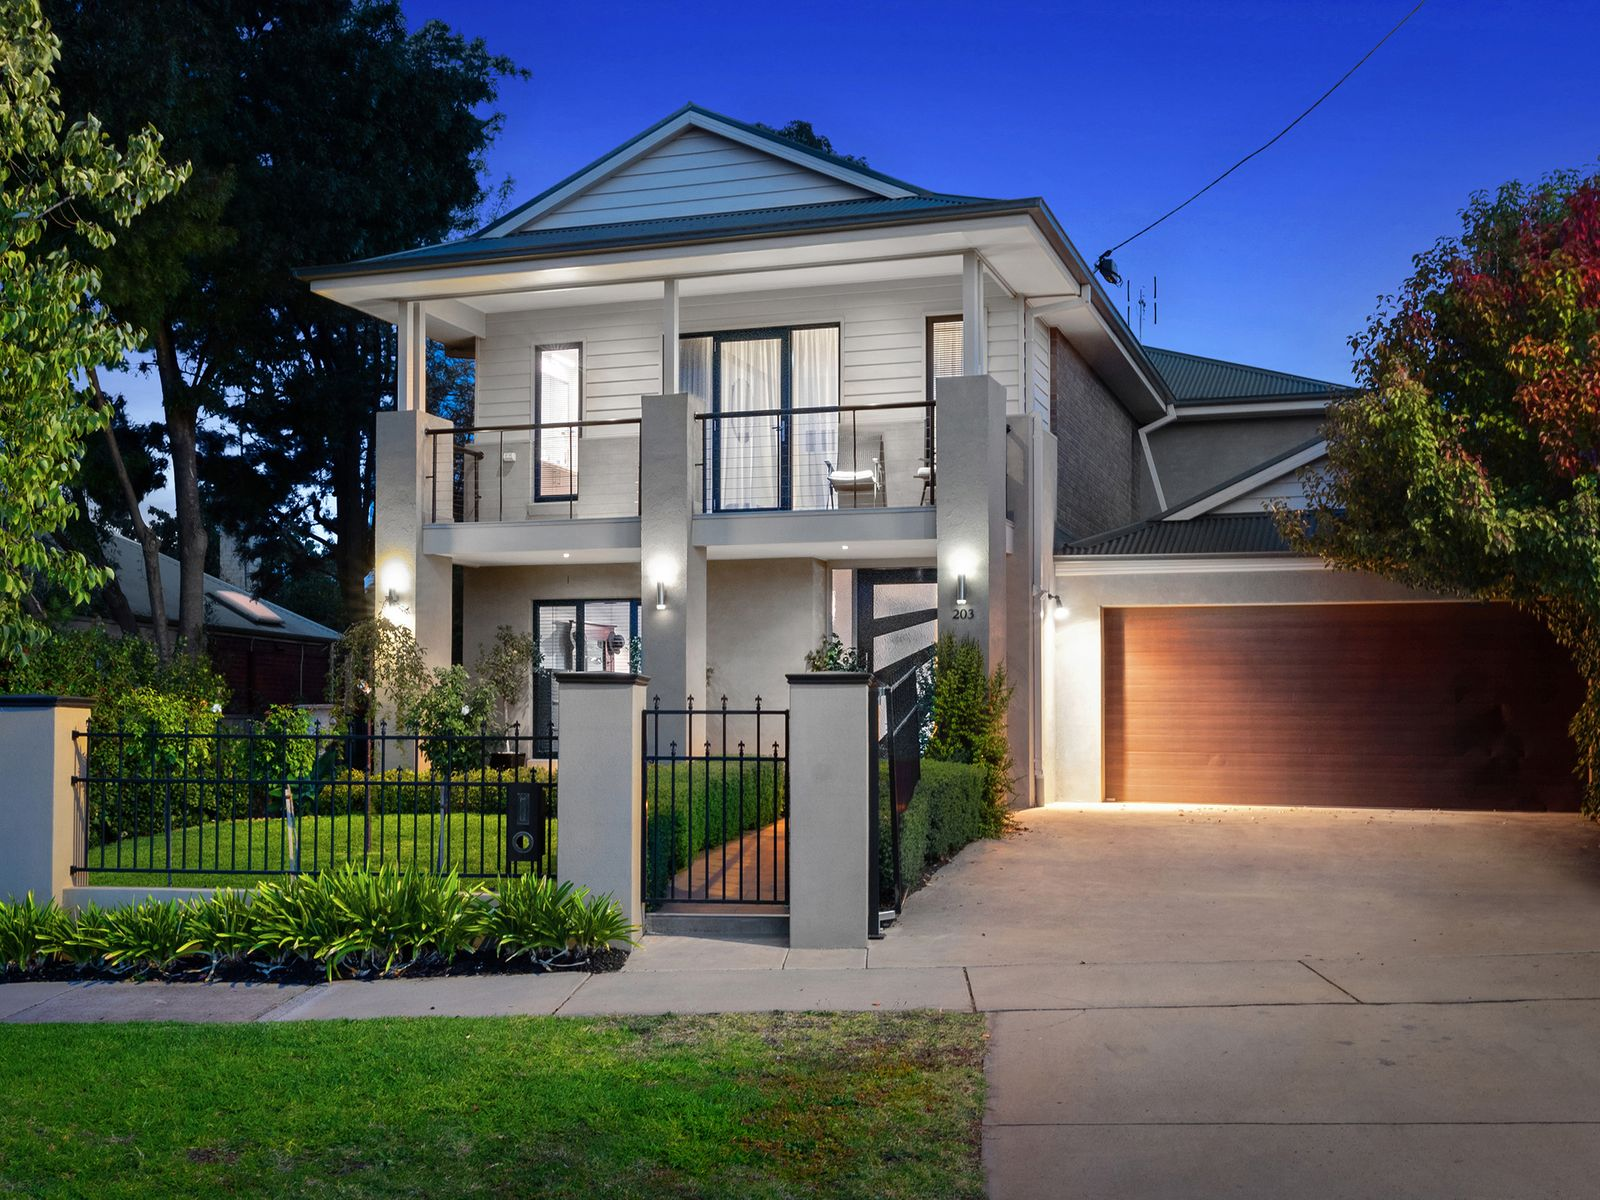 203 King Street, Bendigo, VIC 3550